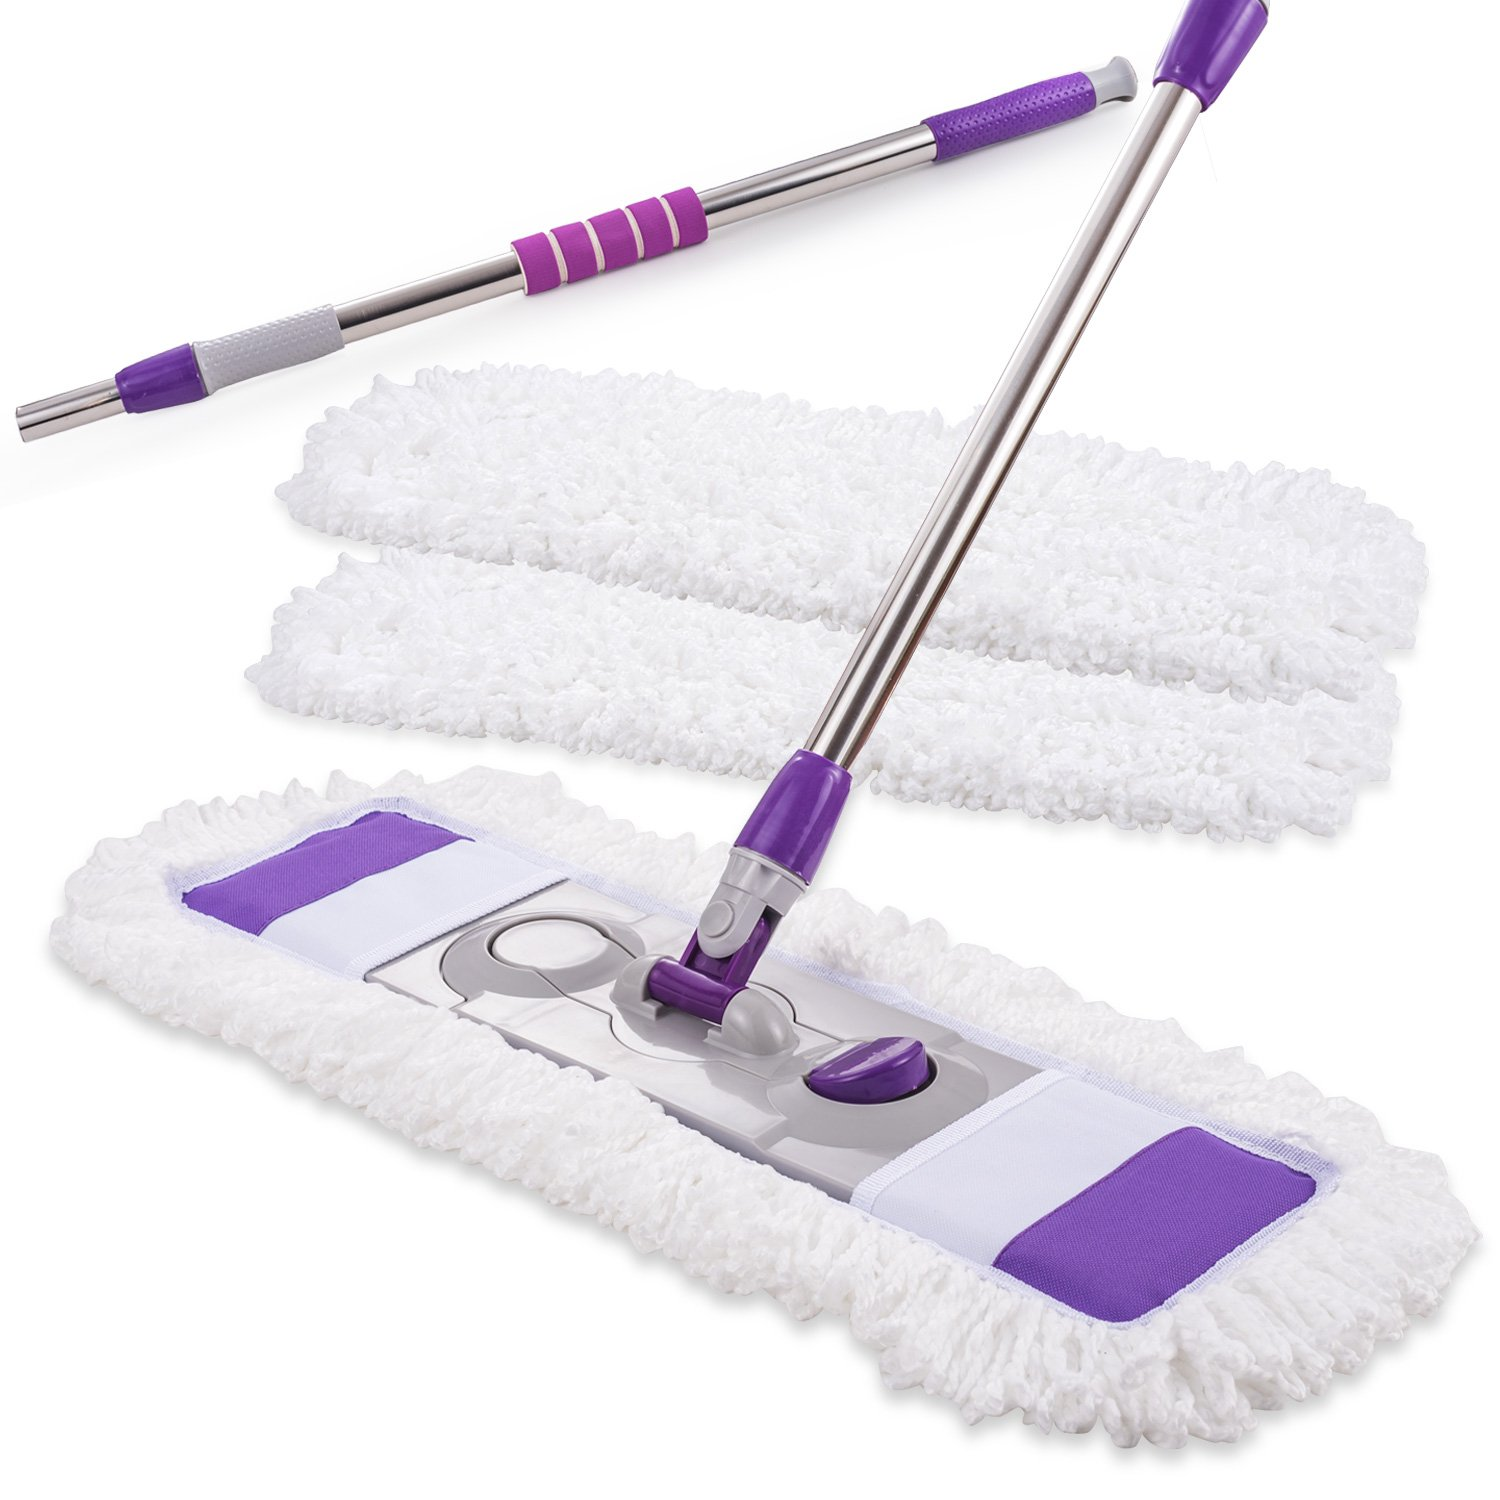 Microfiber Hardwood Floor Mop Kit with 3 Reusable Washable Pads, 360 Degree Professional Handle Flat Mop for Wet and Dry Wood Floor Cleaning, Kitchen, Bathroom, Home, Office, Hardwood, Laminate, Tiles by Shallylu